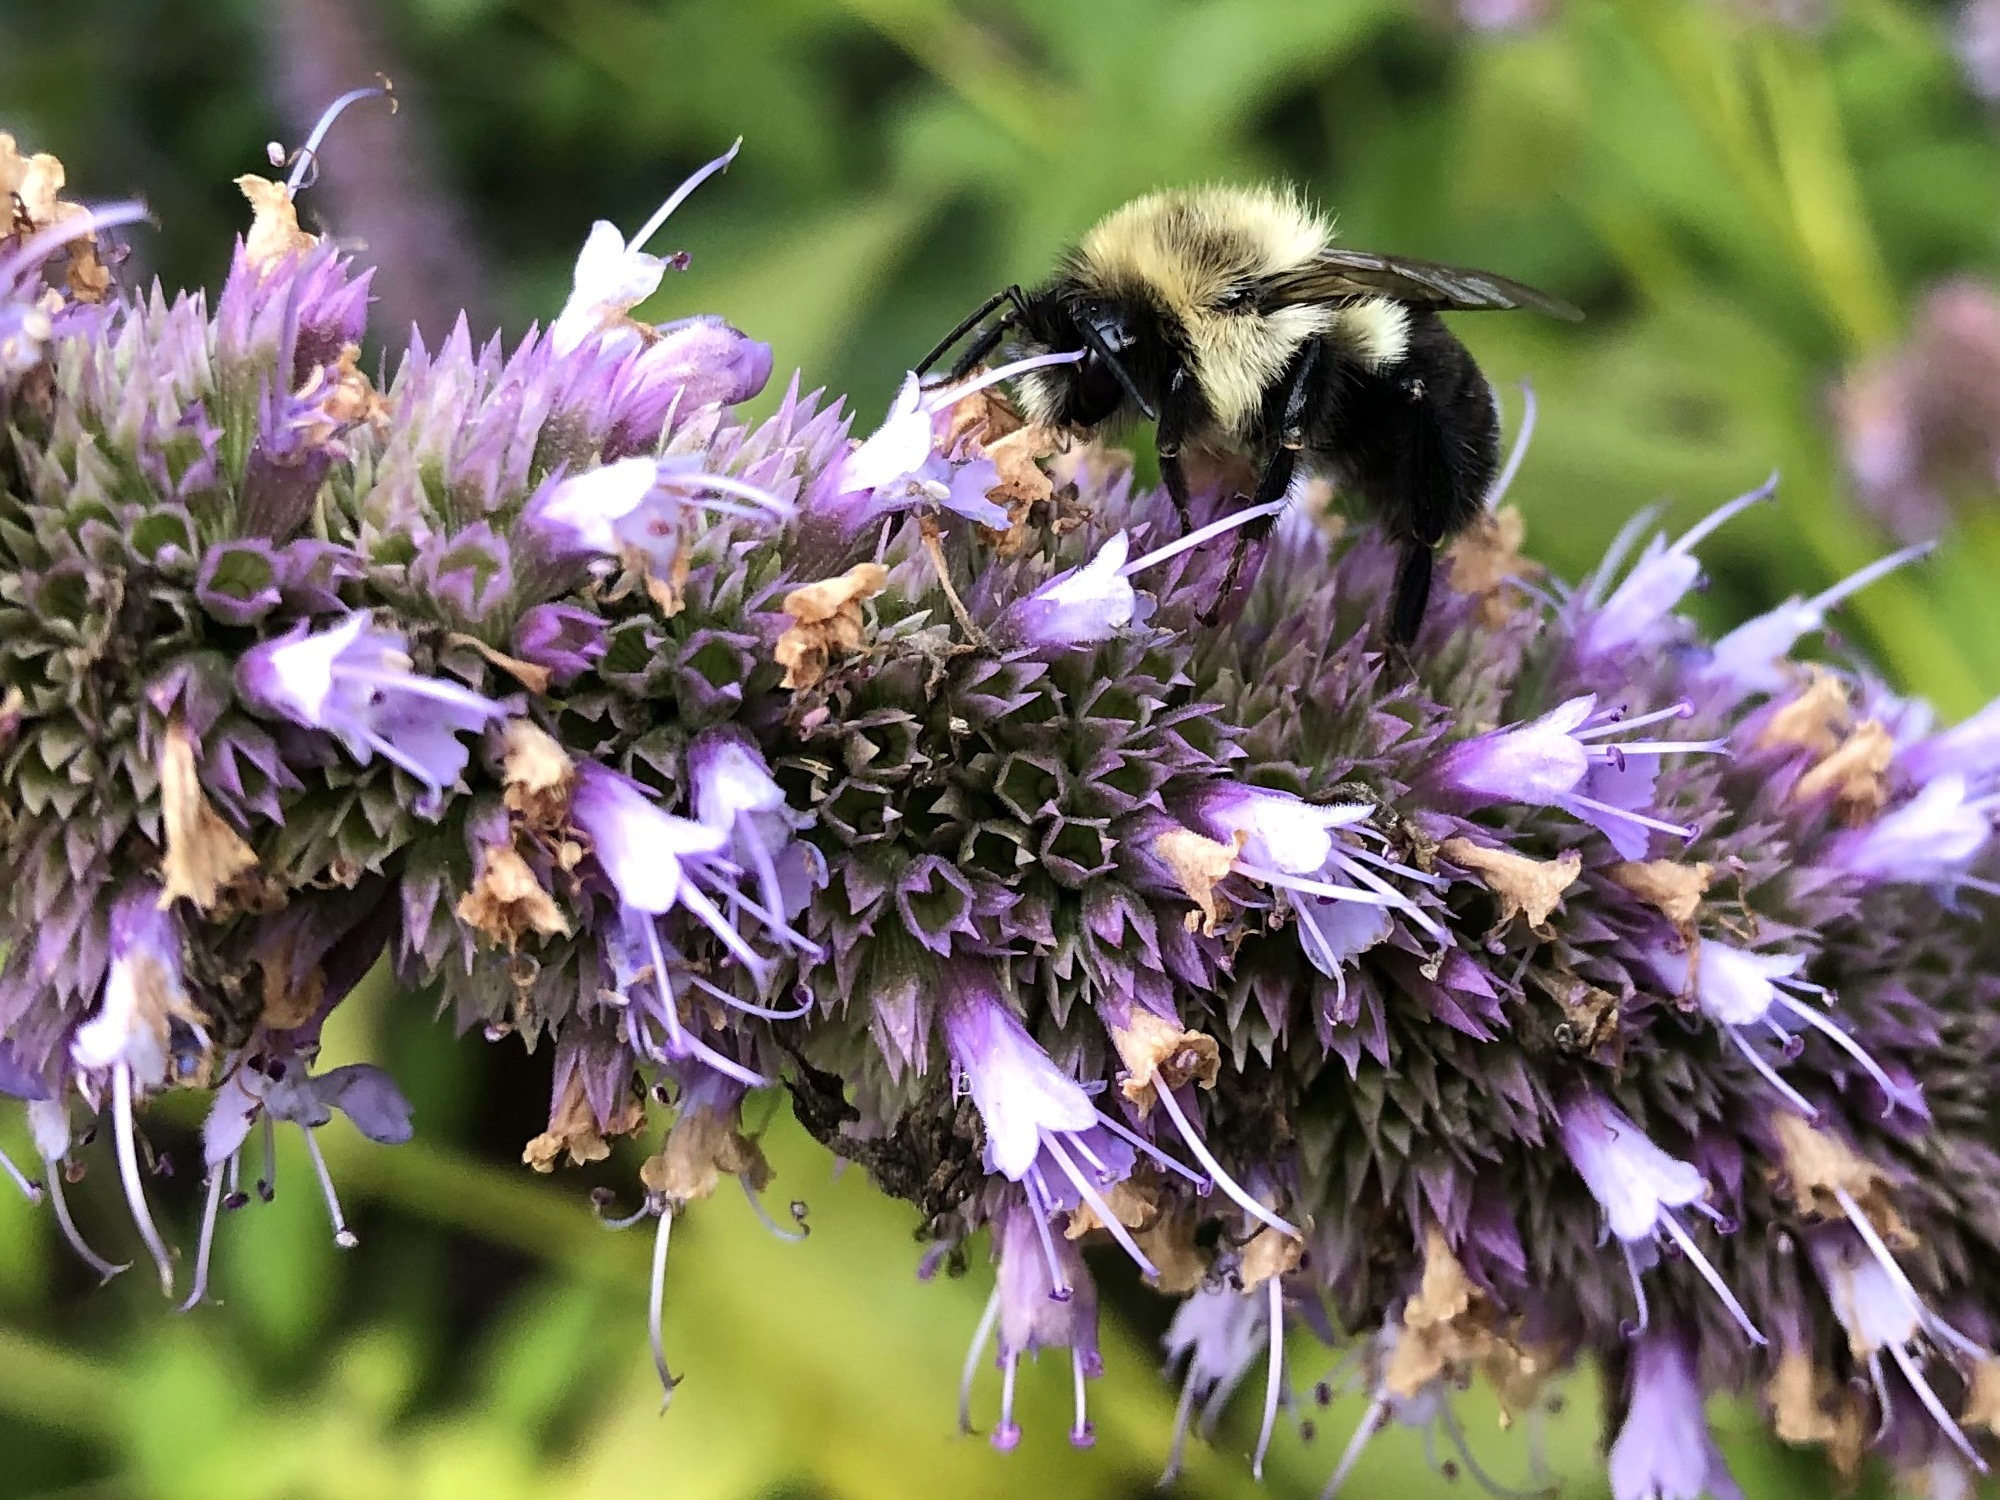 Bumblebee on Hyssop on September 22, 2020.